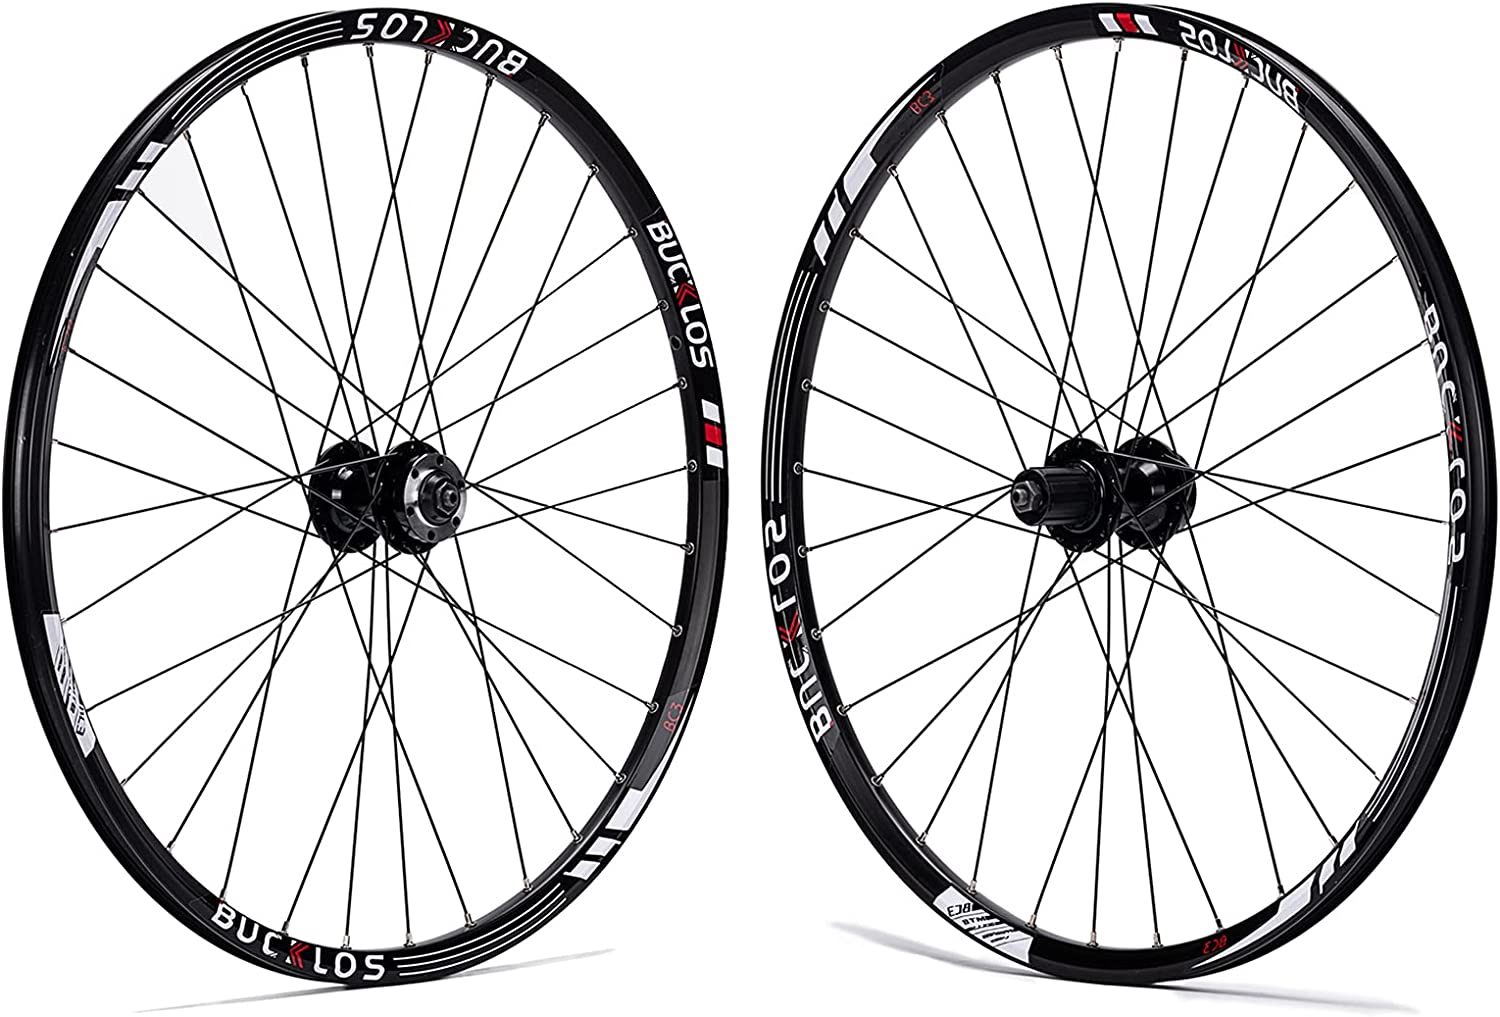 BUCKLOS Mountain Bike Wheelset 26 27.5 R 29 Store Inch Aluminum Alloy Complete Free Shipping